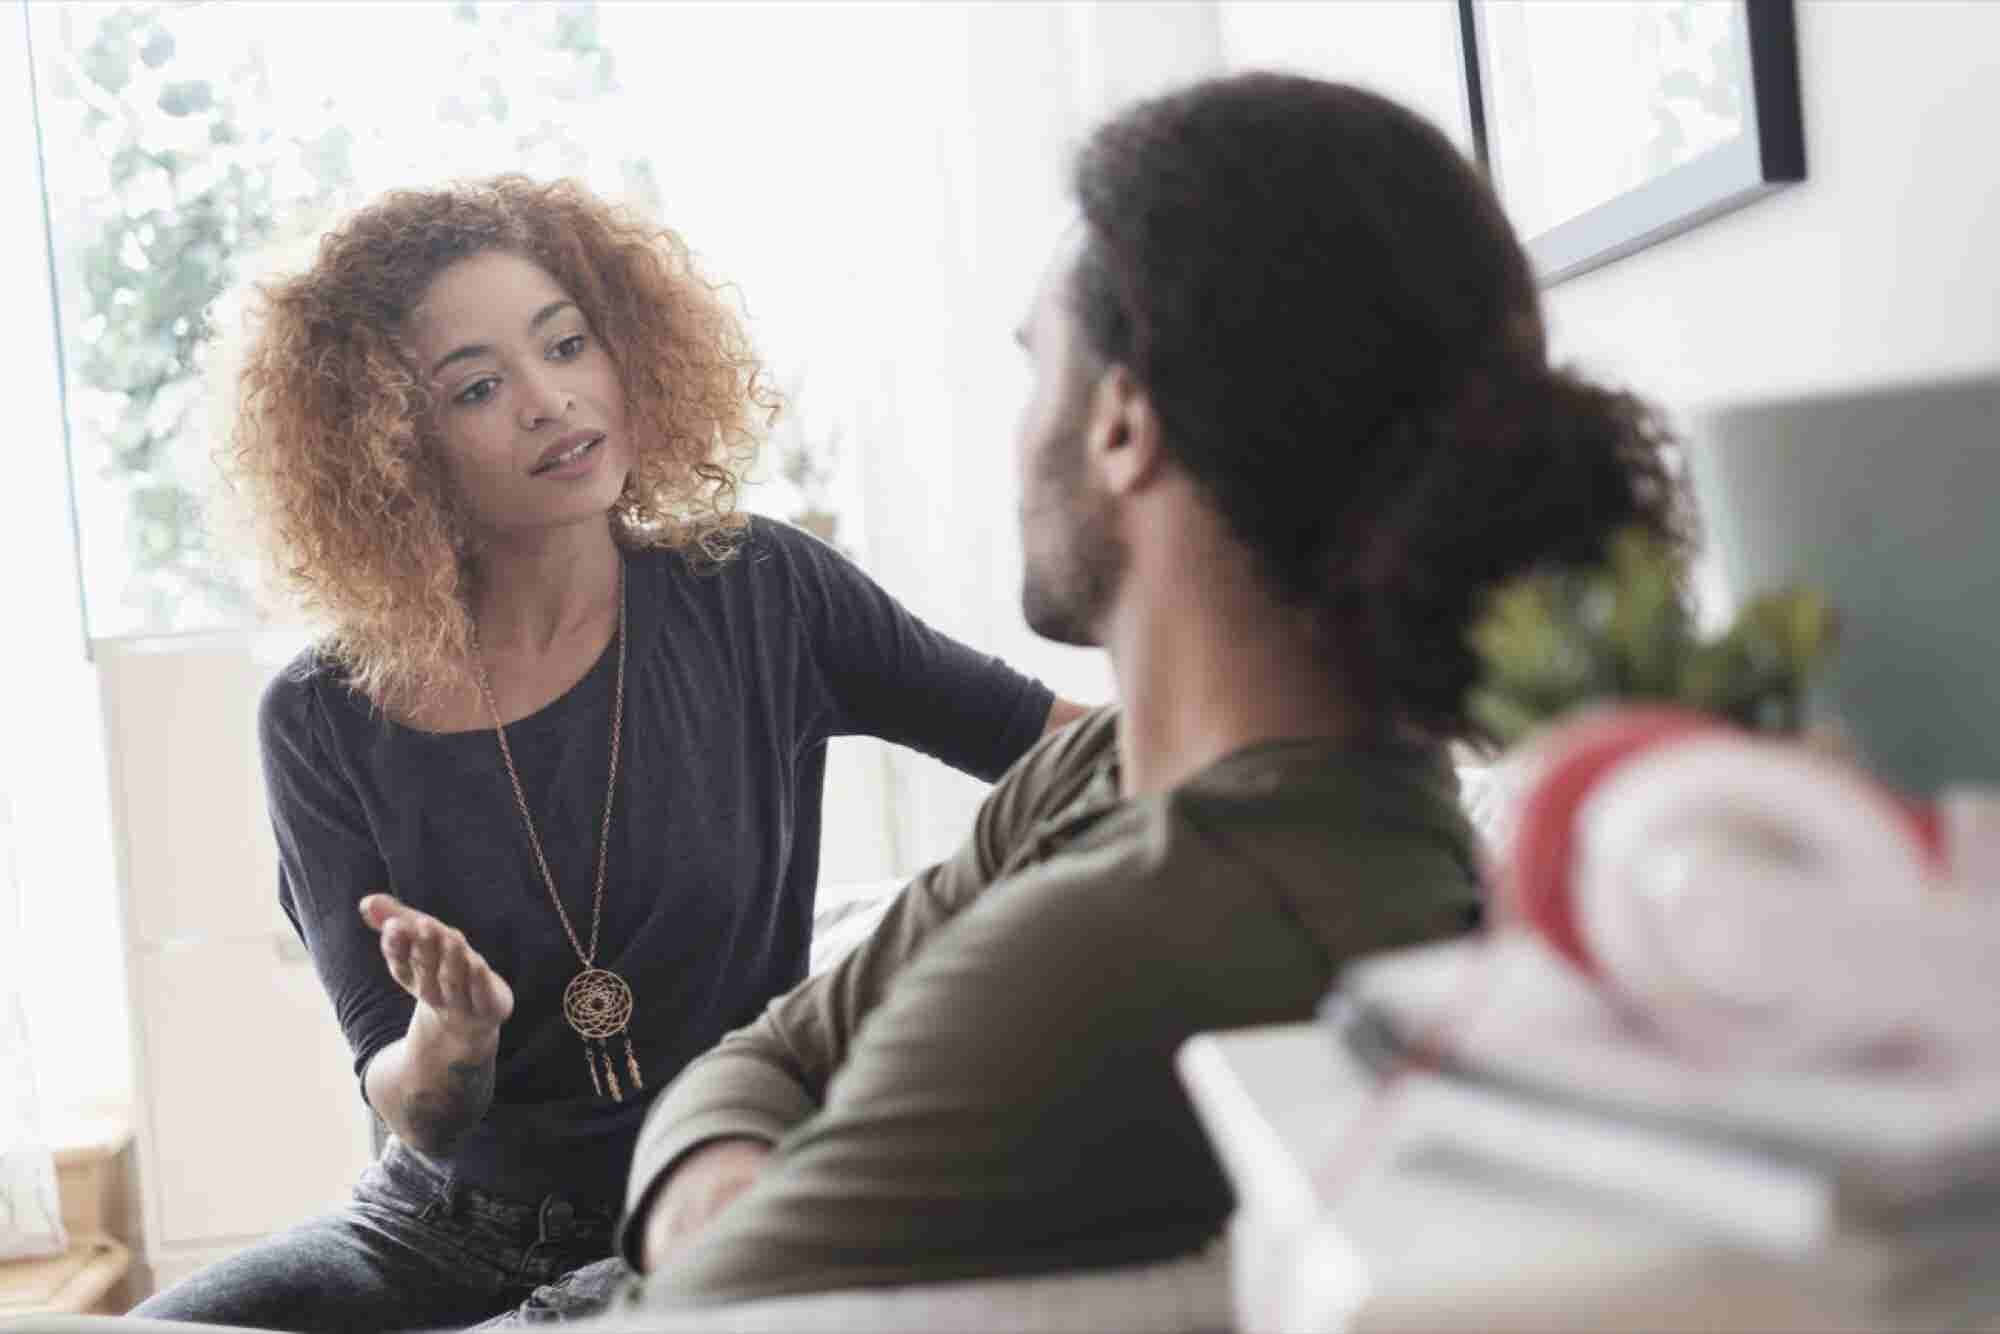 Ask the Relationship Expert: I Can't Stop Acting Like the Boss With My Partner